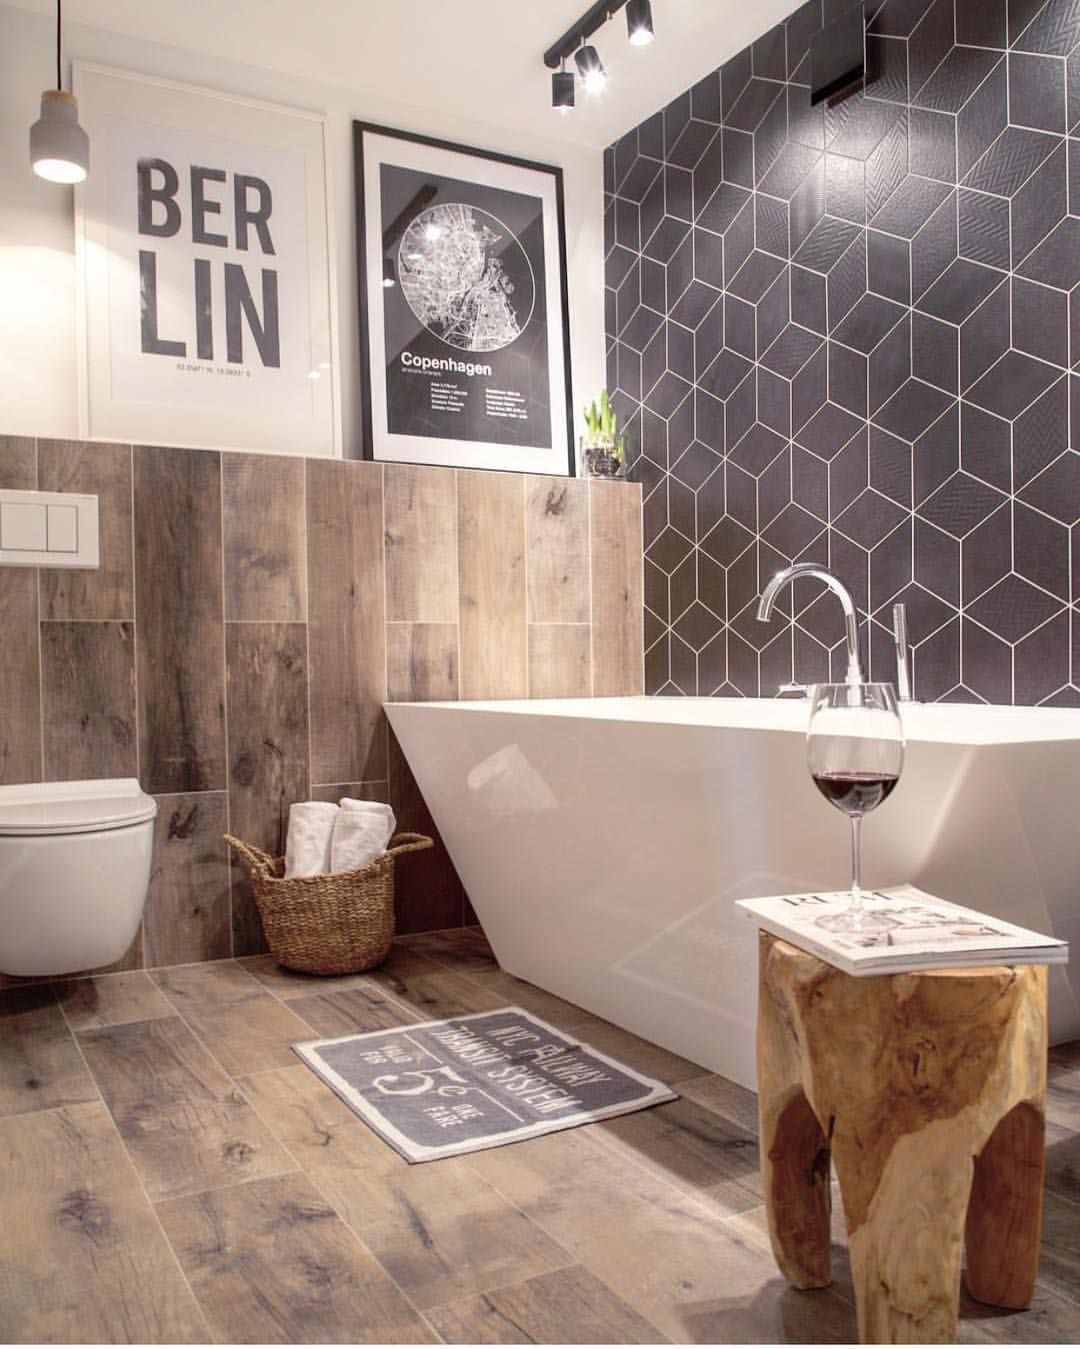 When It Concerns Tiling Your Bathroom There Are Many Choices As Well As Methods To Pick Beautiful Tile Bathroom Bathroom Tile Designs Farmhouse Bathroom Decor